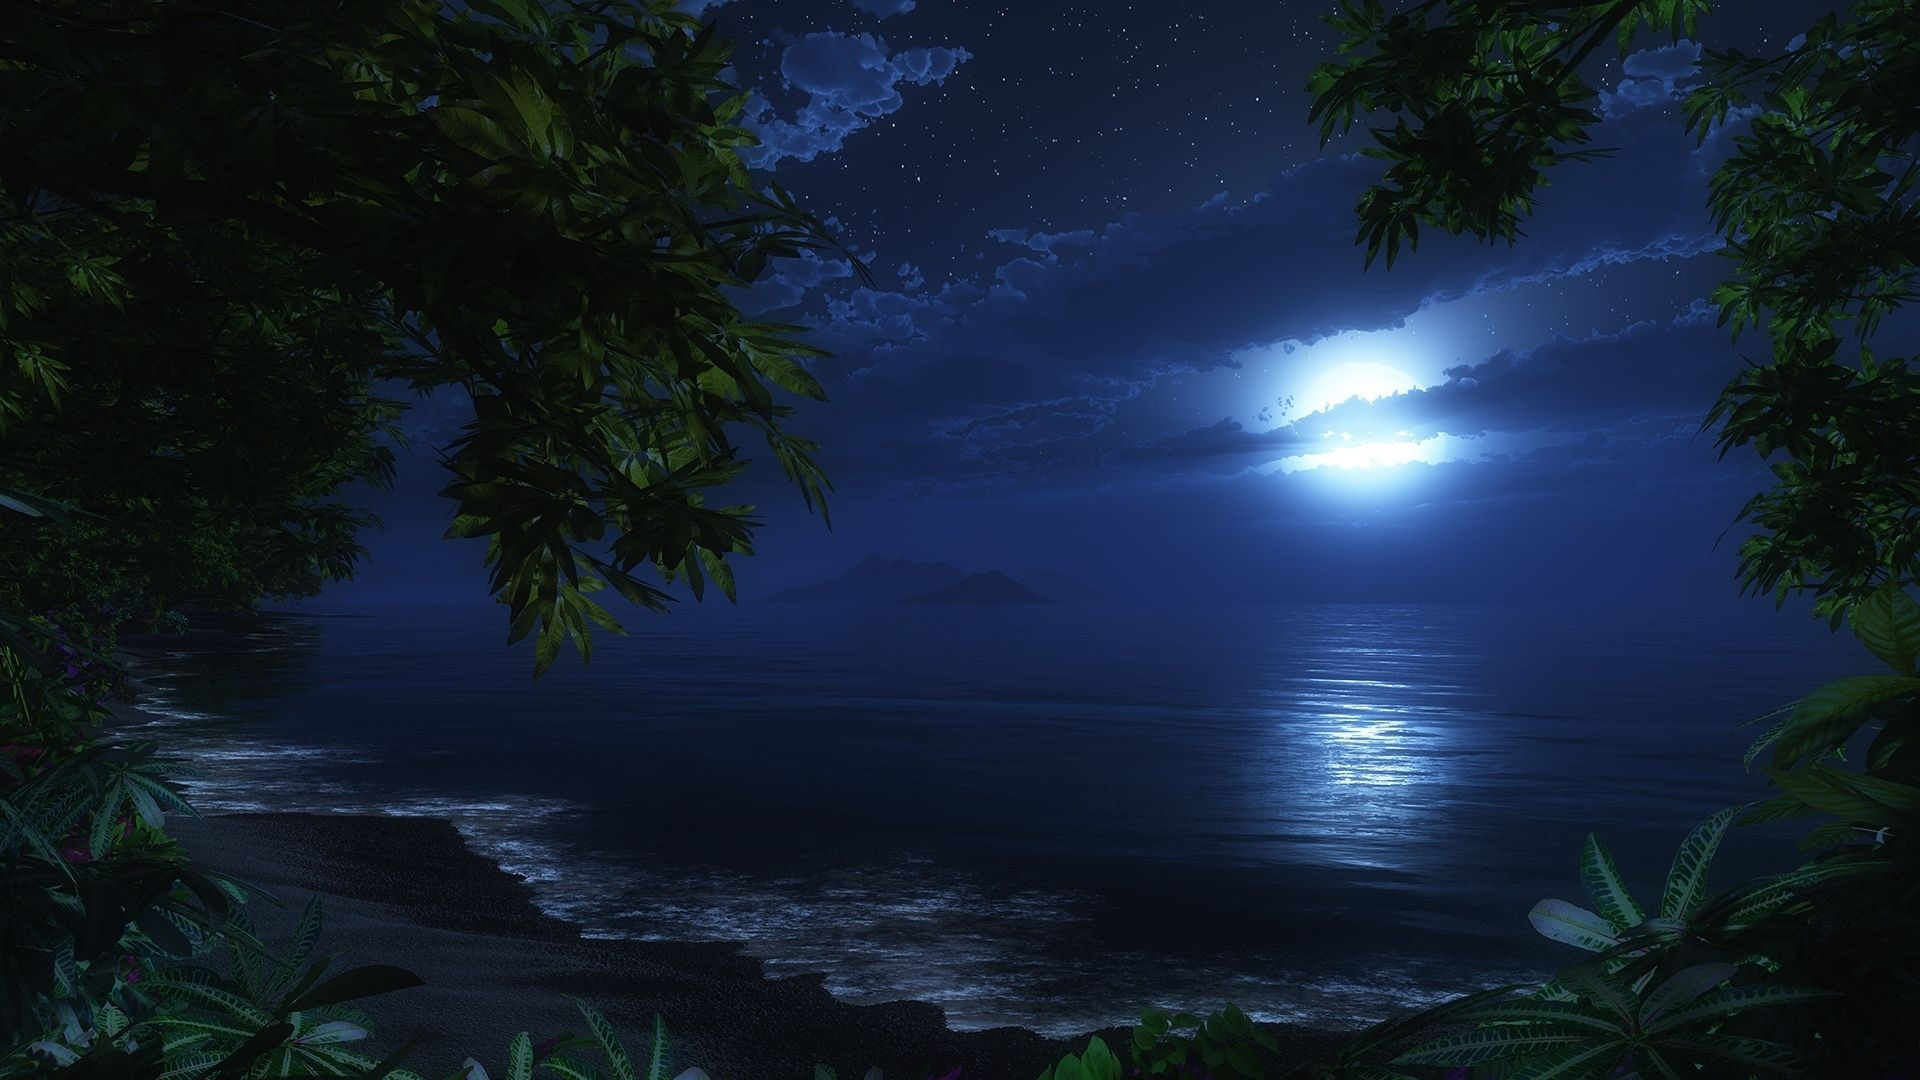 3d 1920x1080 Hd Nature Wallpapers Ocean Wallpaper Night Skies Beach At Night